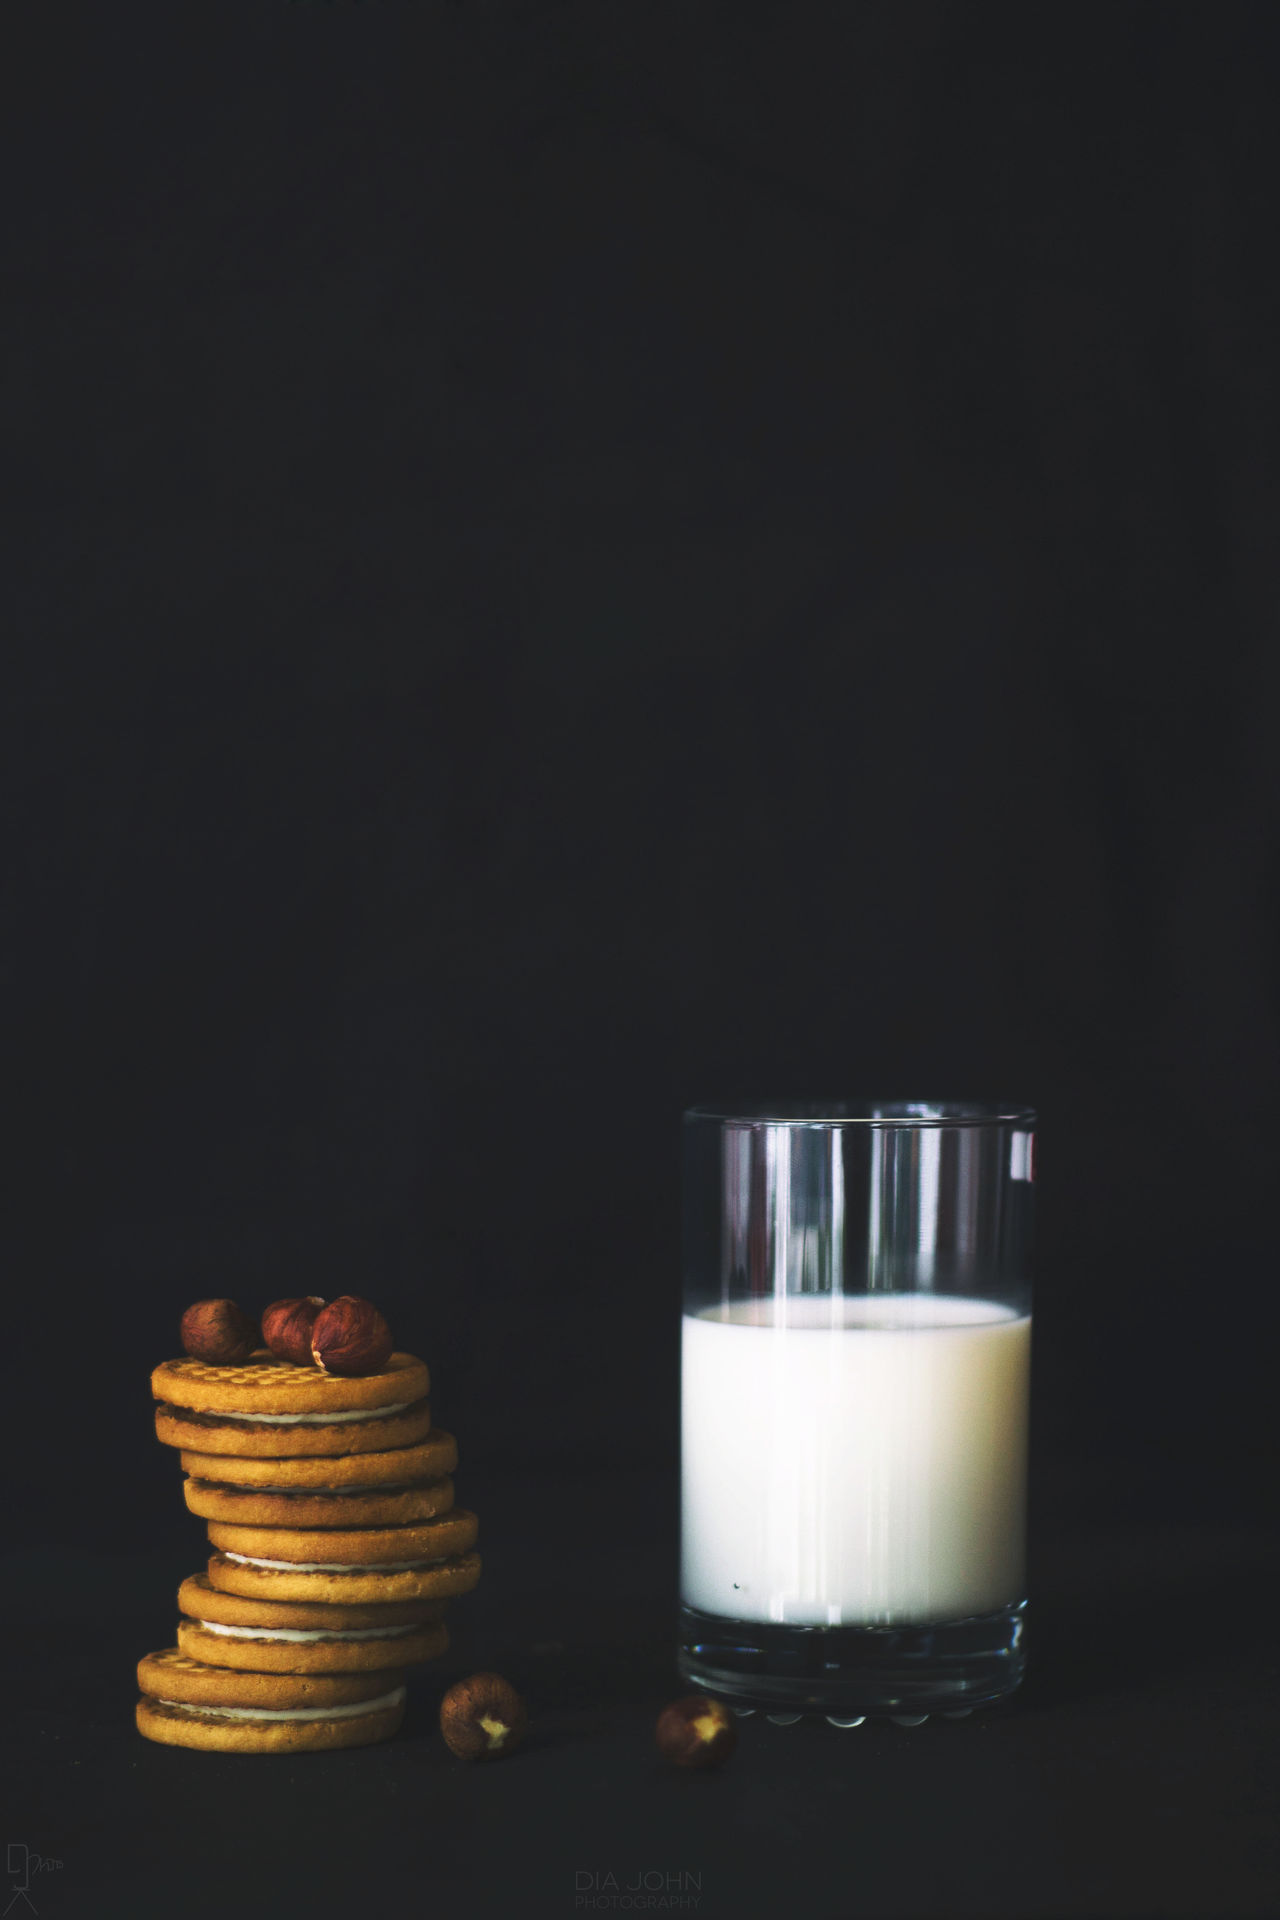 Hazelnuts,Biscuits and Glass of Milk Arrangement Biscuits Black Background Breakfast Creambiscuits Dark Glass Glassofmilk Hazelnuts Milk Milkandbiscuits No People Side By Side Still Life First Eyeem Photo